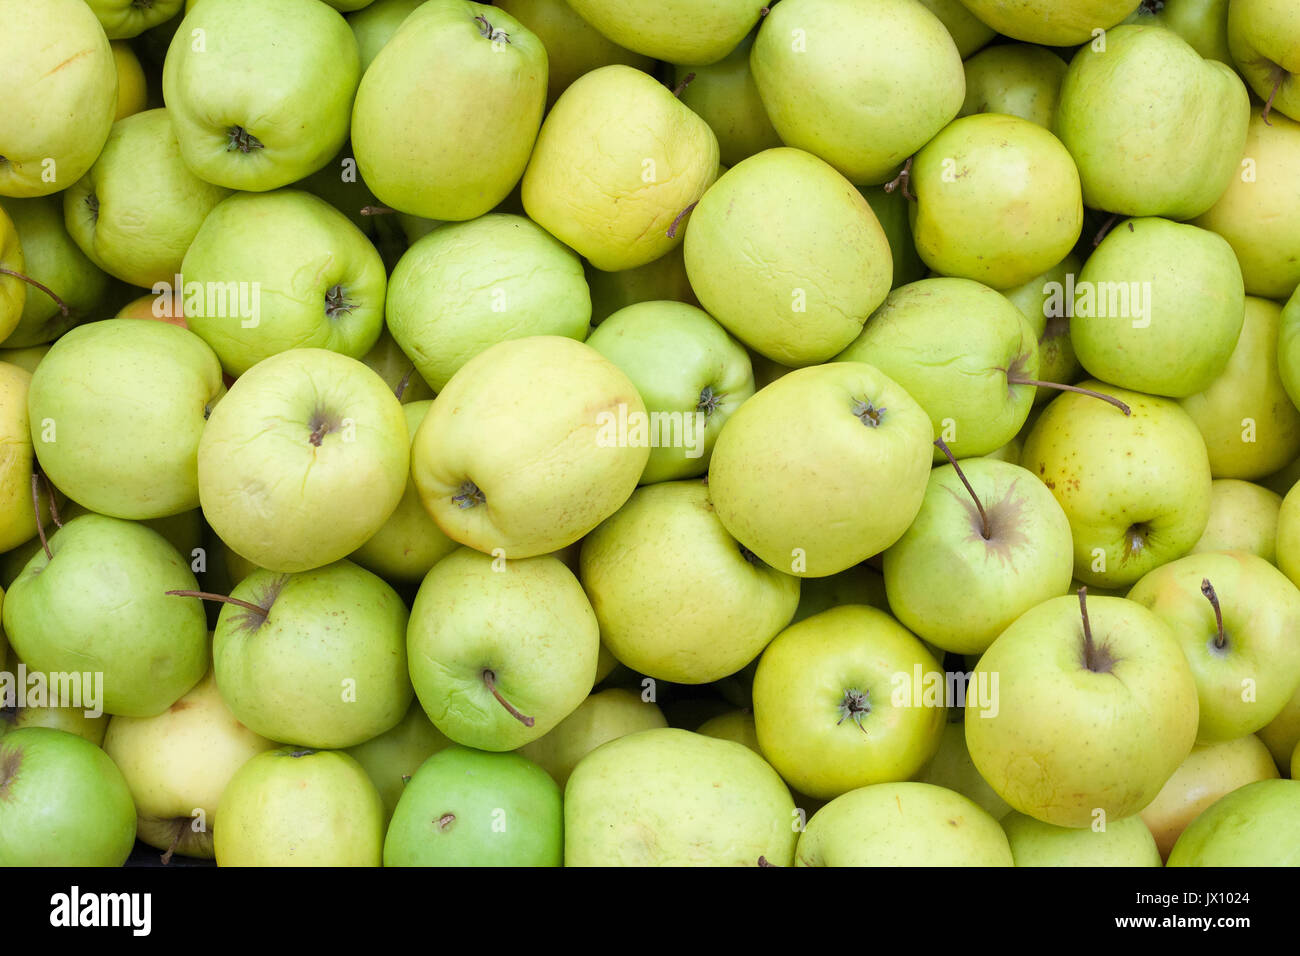 Apples background Green apple Raw fruit and vegetable backgrounds overhead perspective Stock Photo